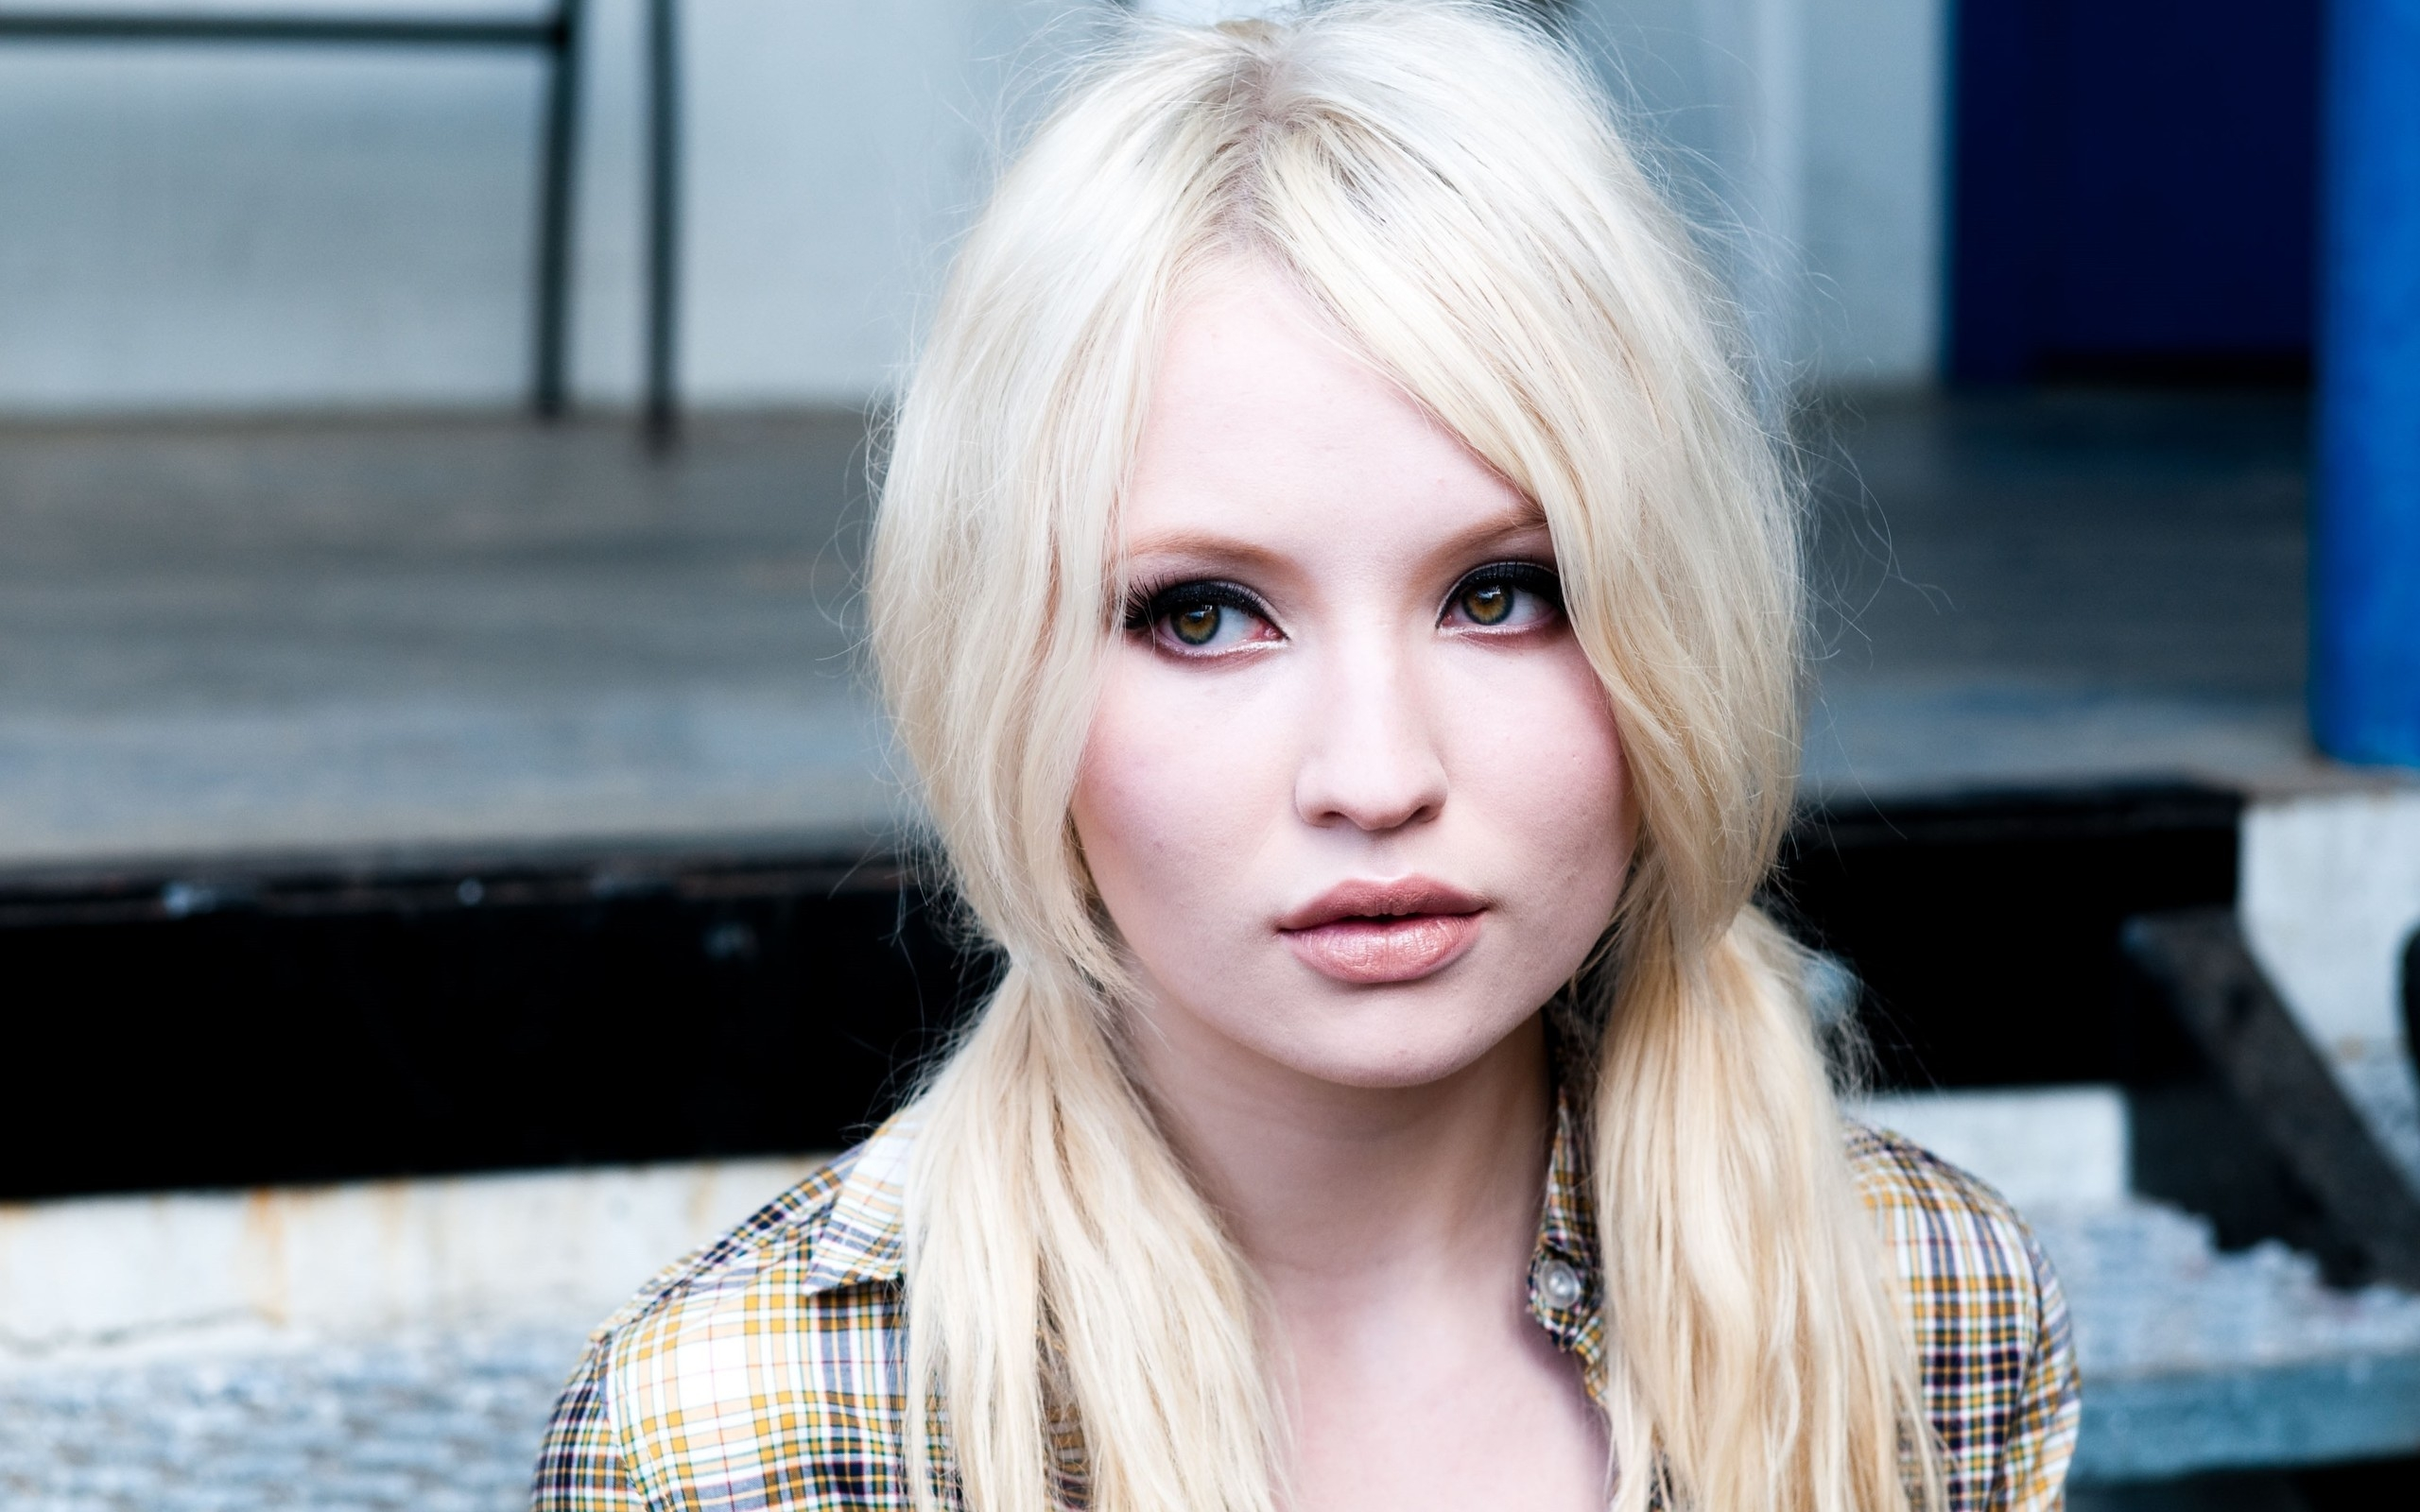 emily browning images emily browning hd wallpaper and background